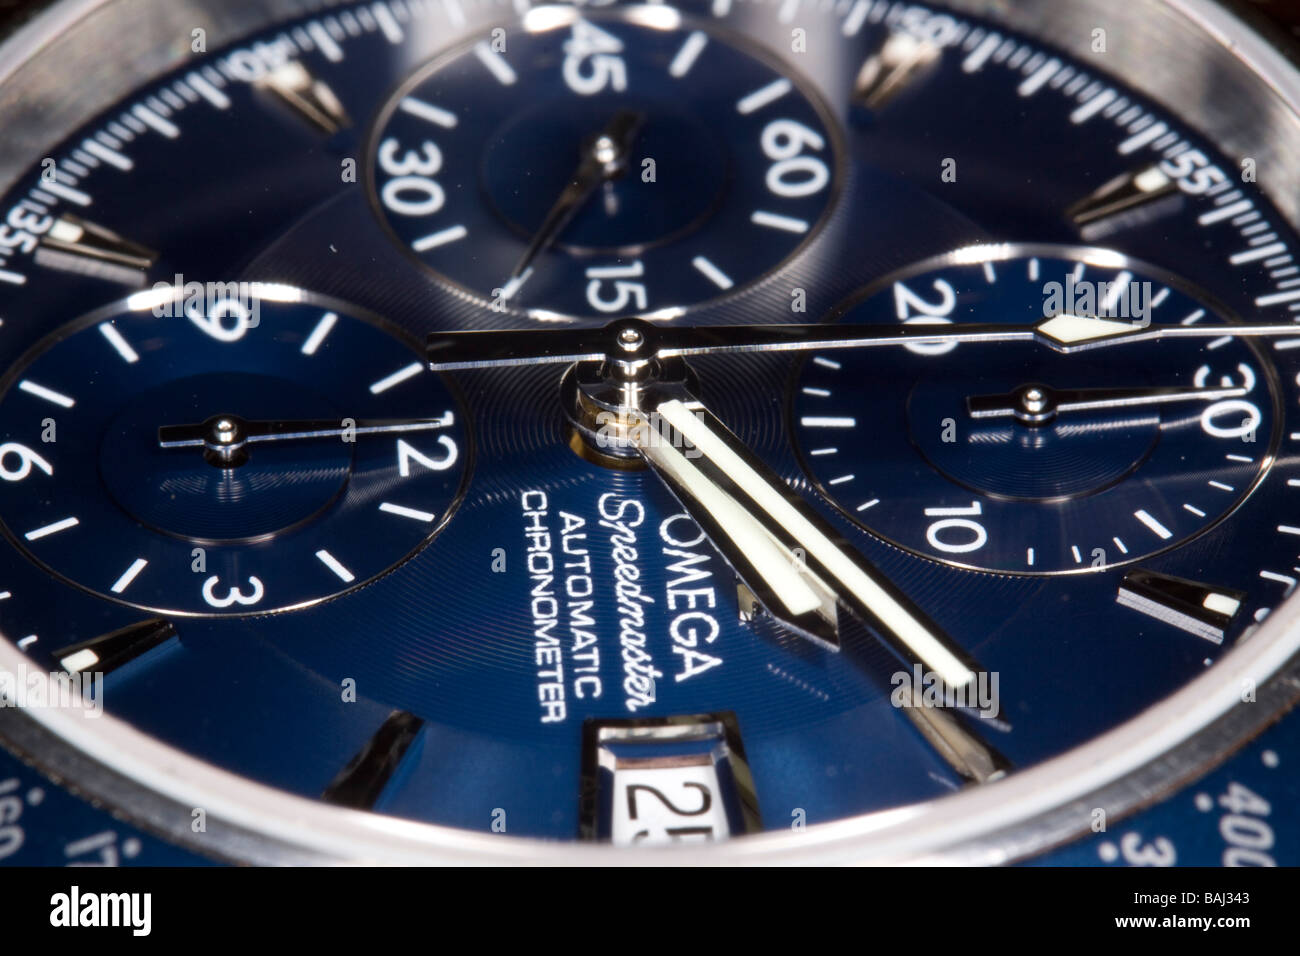 Omega Speedmaster Stock Photo